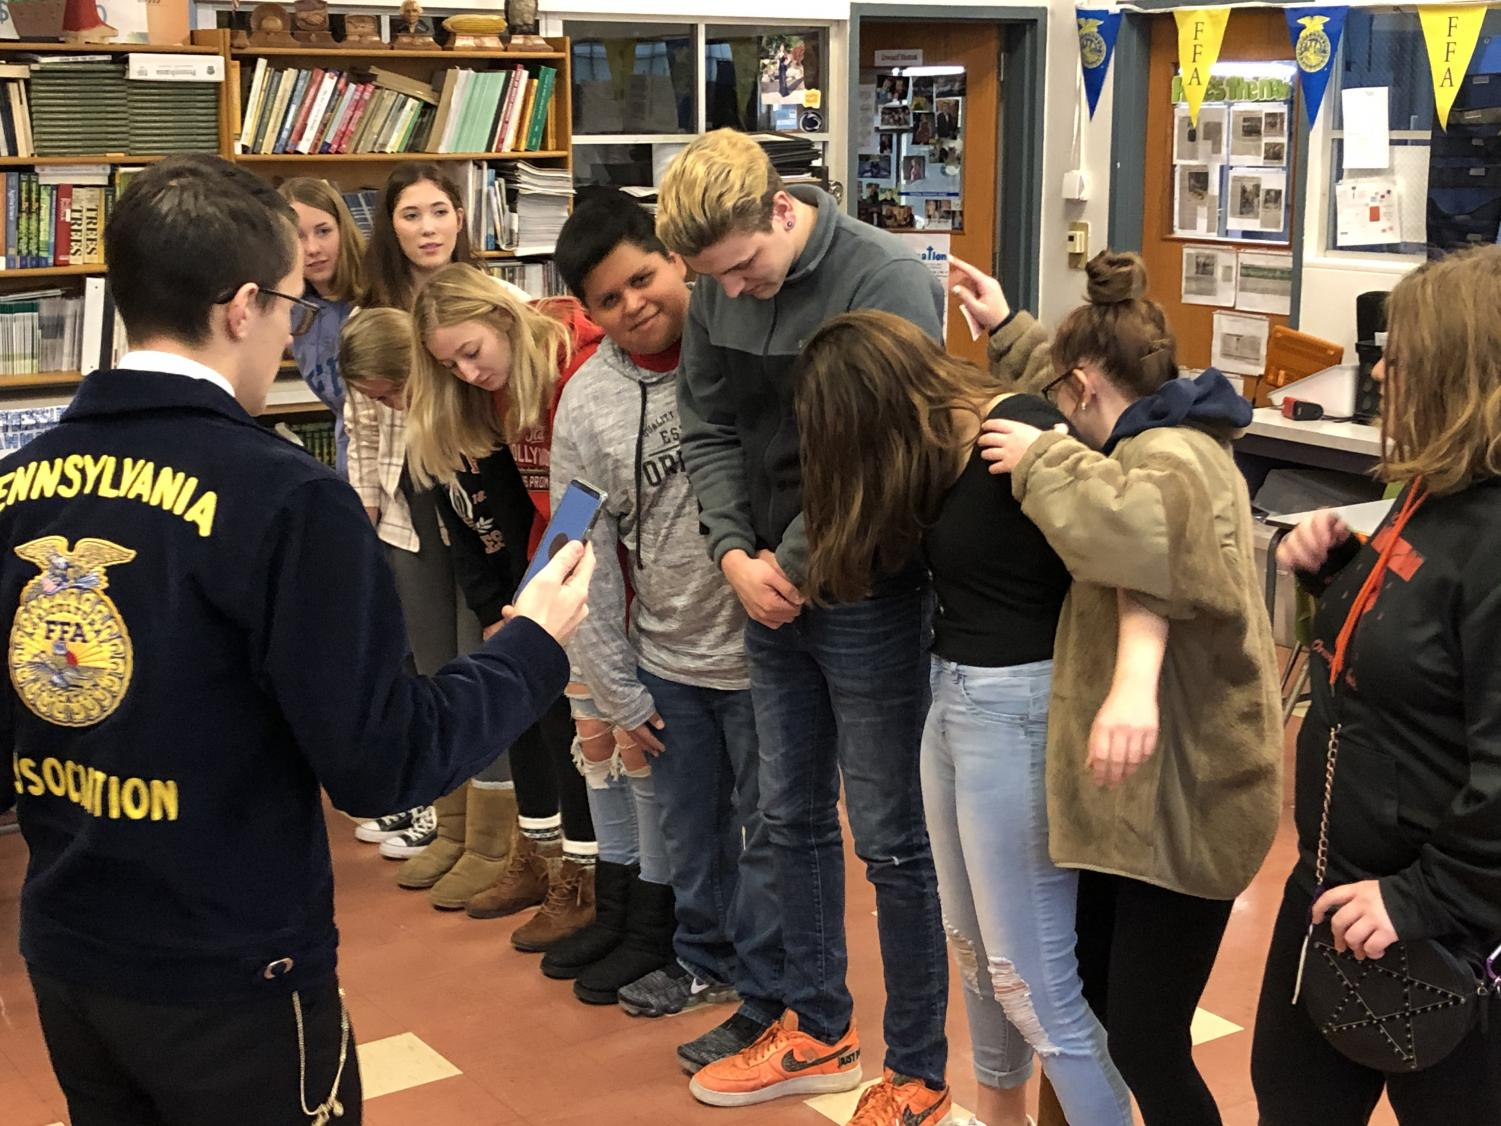 Pennsylvania State FFA Secretary Michael Riggs guides agriculture education students through a teamwork workshop.